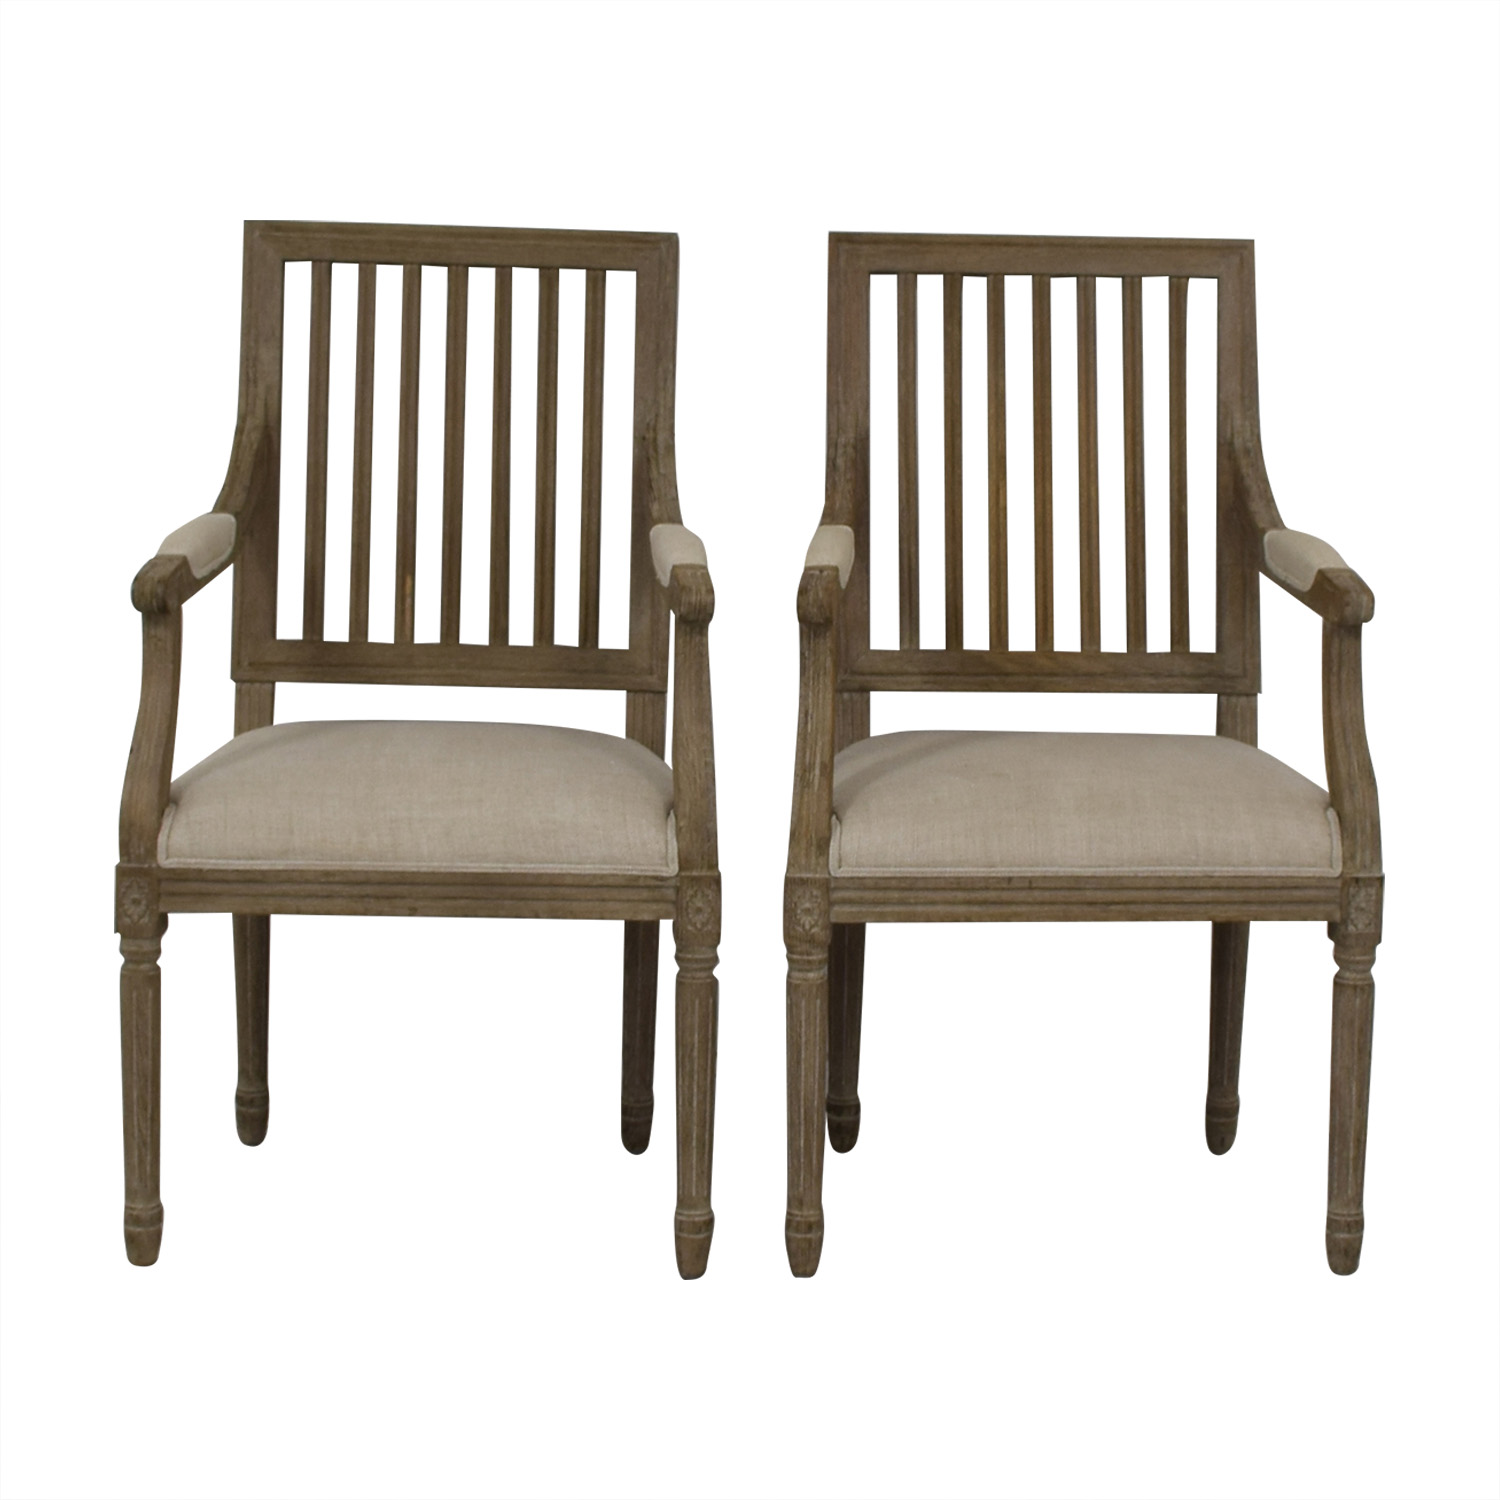 Restoration Hardware Dining Chairs 68 Off Restoration Hardware Restoration Hardware Spindle Back Dining Chairs Chairs